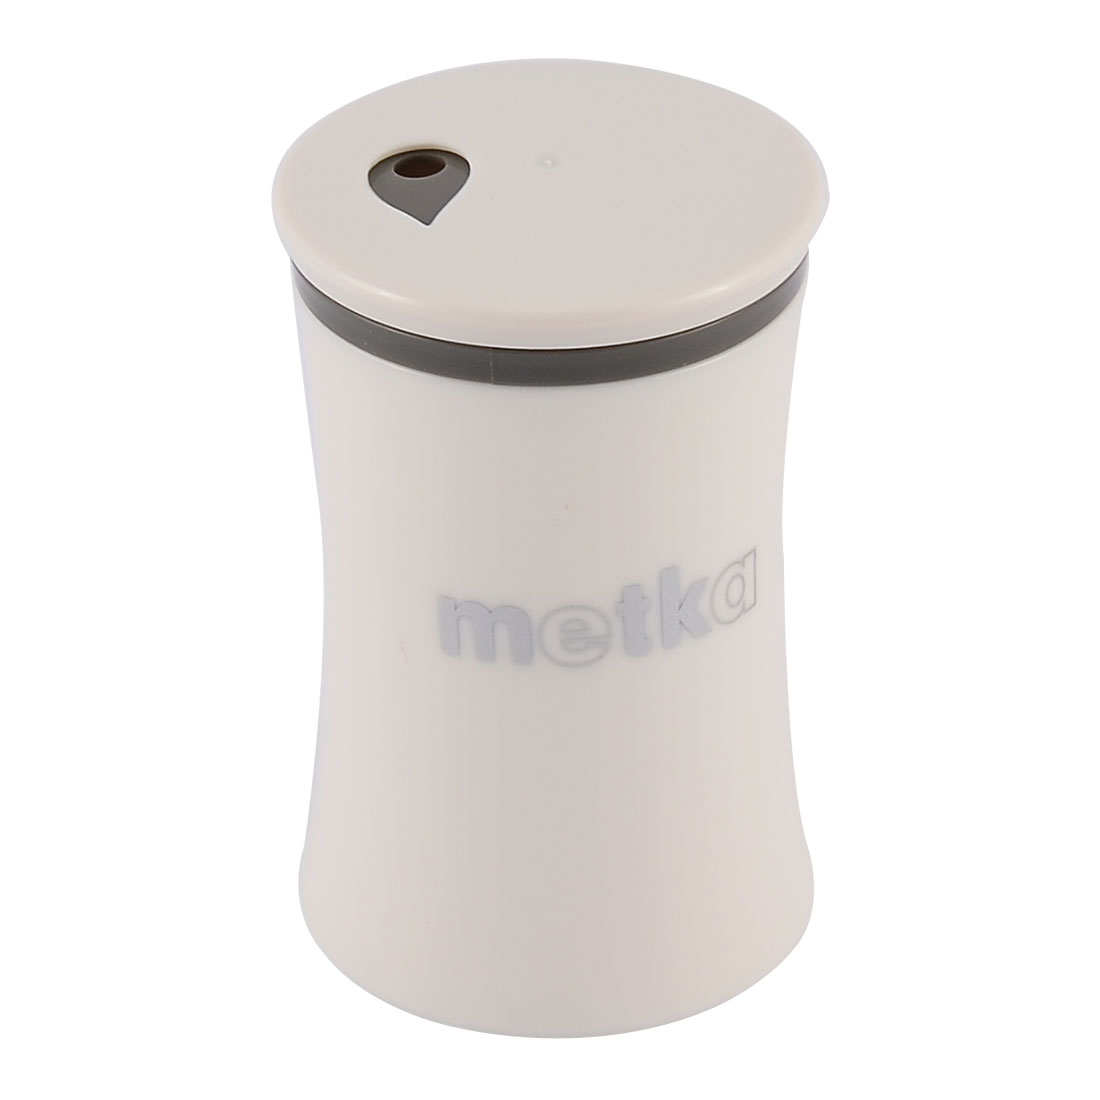 Coffee Shop Plastic Cylinder Shaped Toothpick Holder Container Box Case White